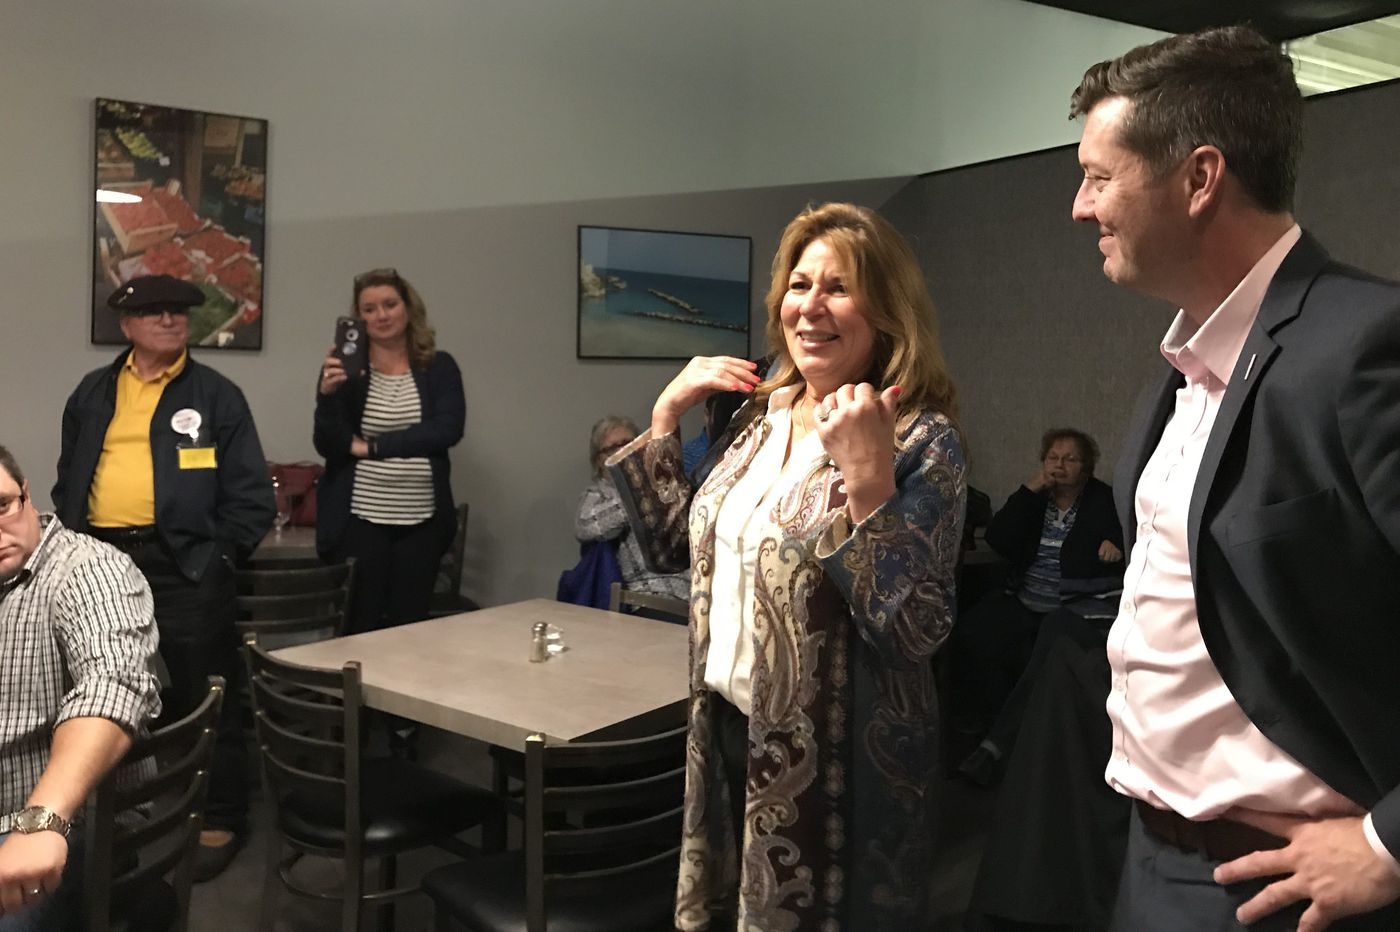 A midterms nail-biter in Bucks County means bad news for Pa. Democrats. But this is Bucks! | Maria Panaritis